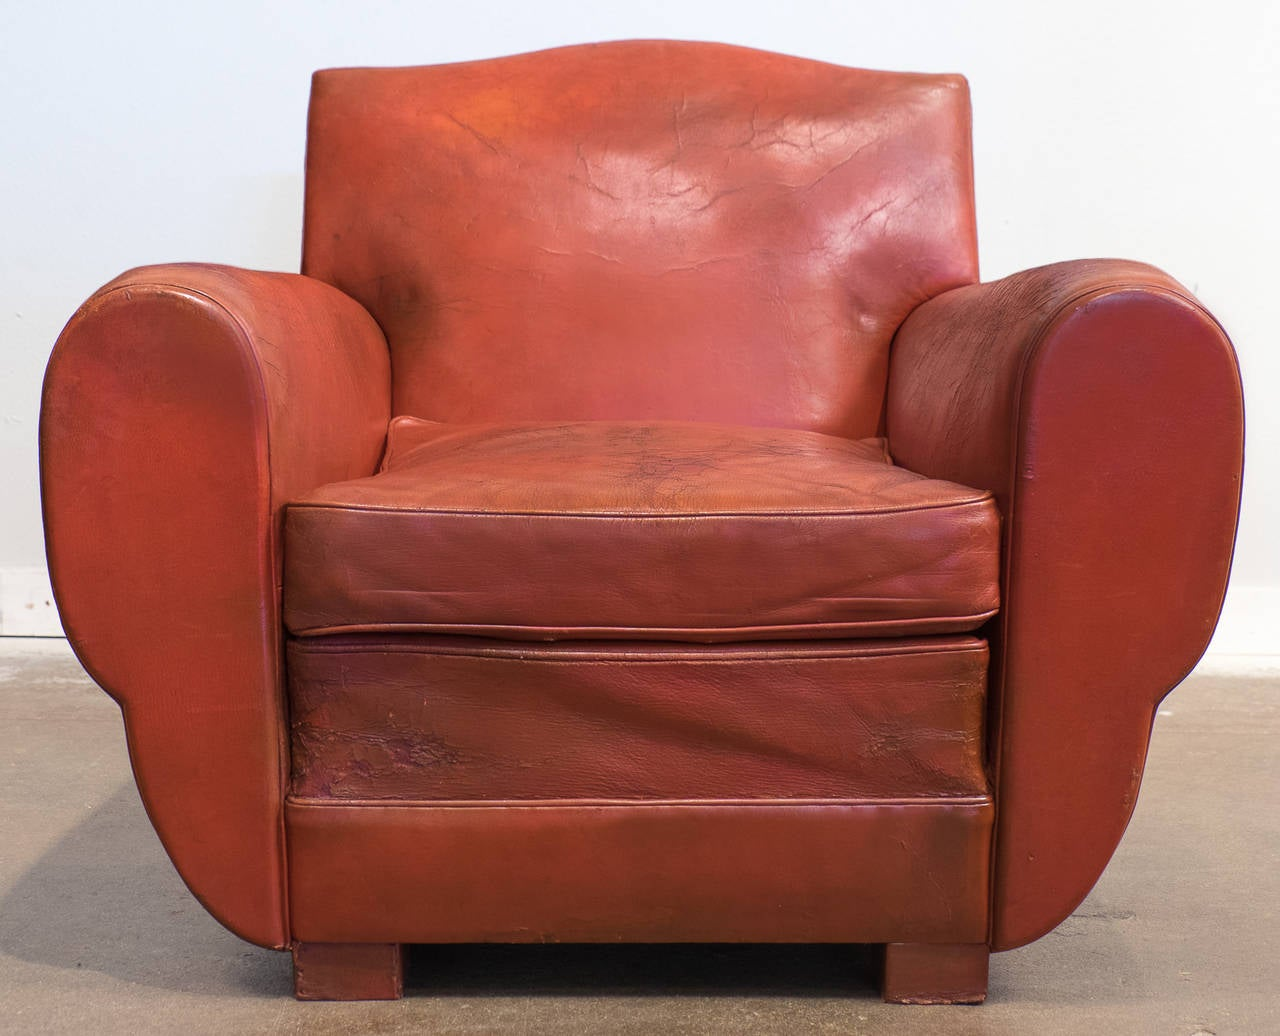 superb french vintage red leather club chair at 1stdibs